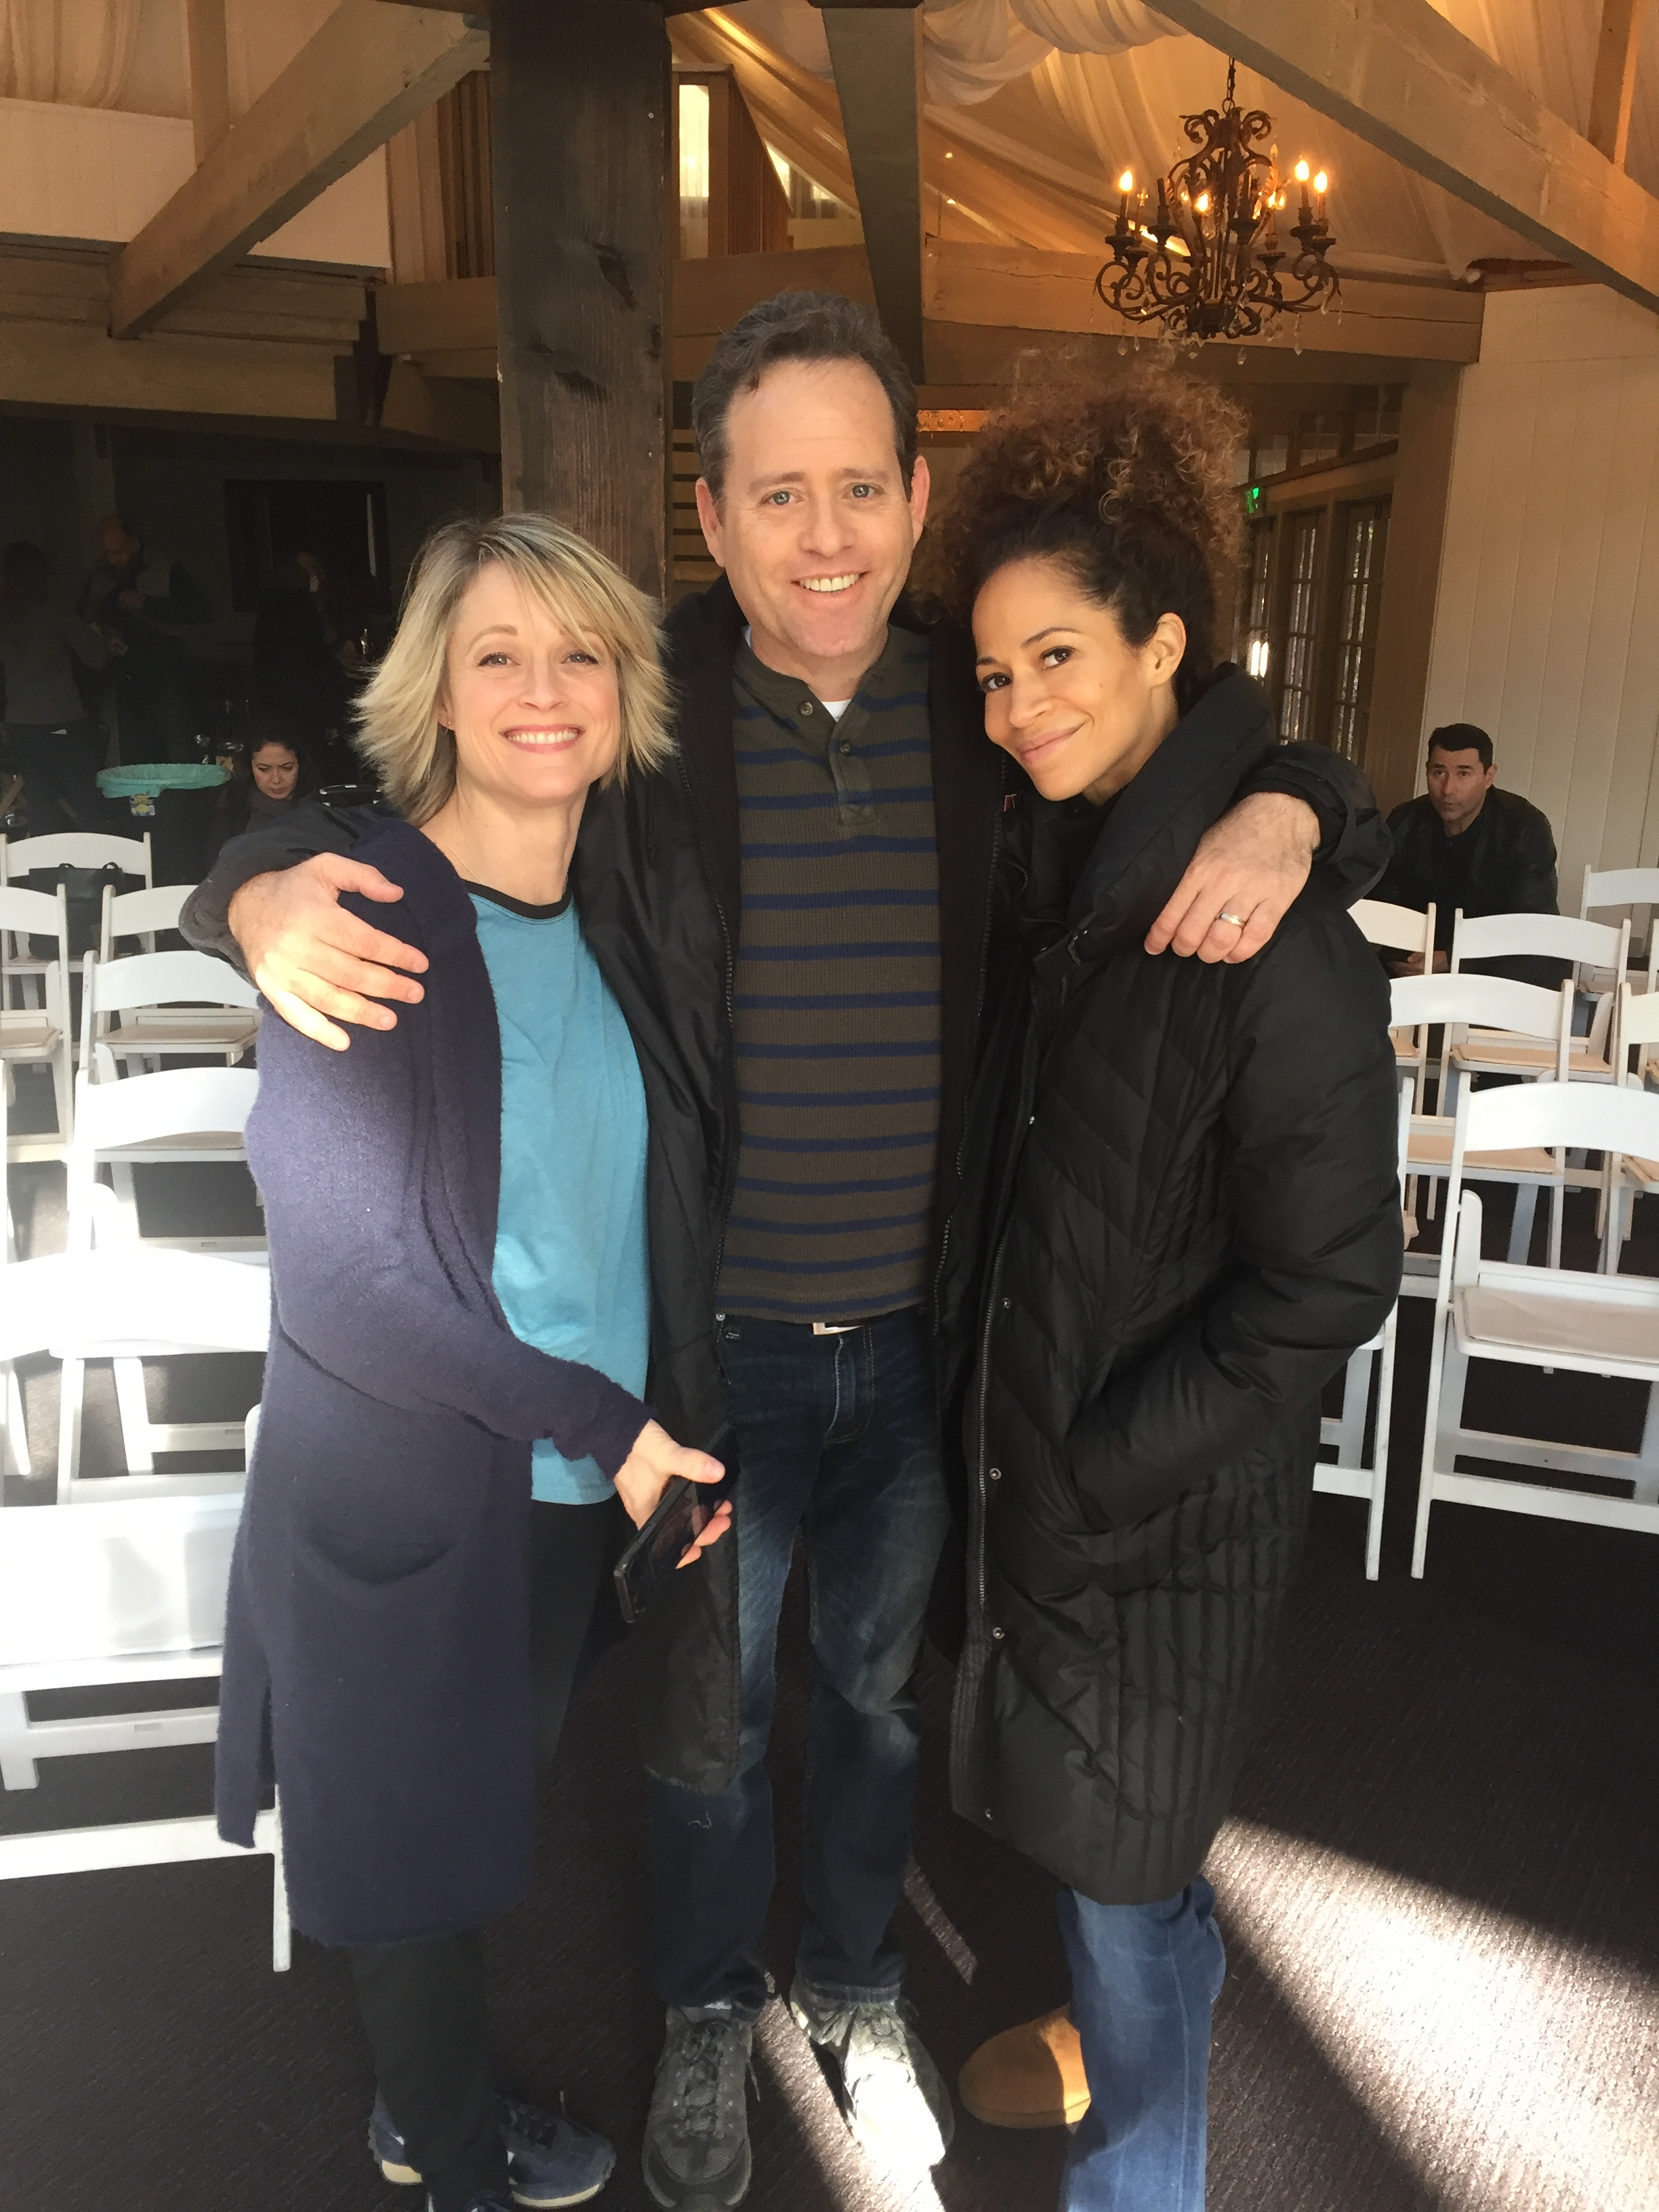 On the set of THE FOSTERS with Teri Polo and Sherri Saum